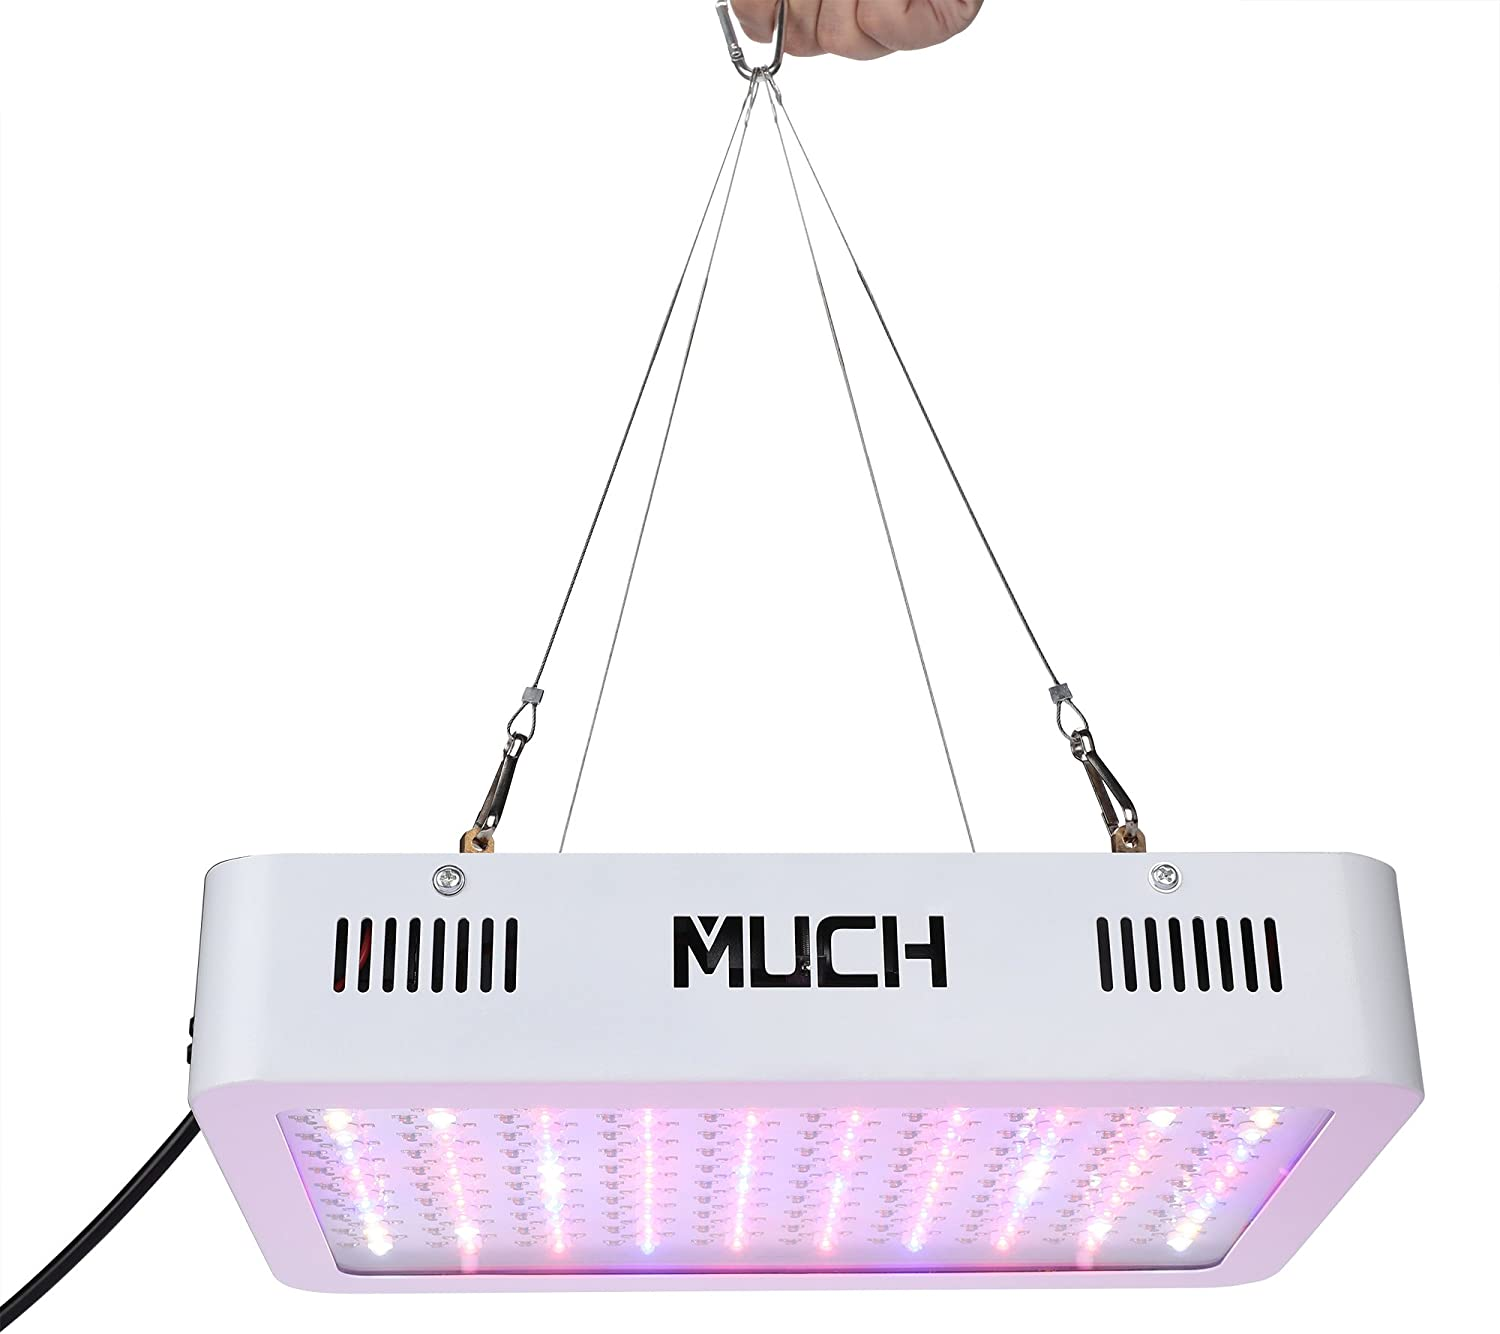 MUCH LED Grow Light, 300W Indoor Plant Grow Lights Full Spectrum Plant Grow Lamp with UV IR for Indoor Plants Veg and Flower 300W